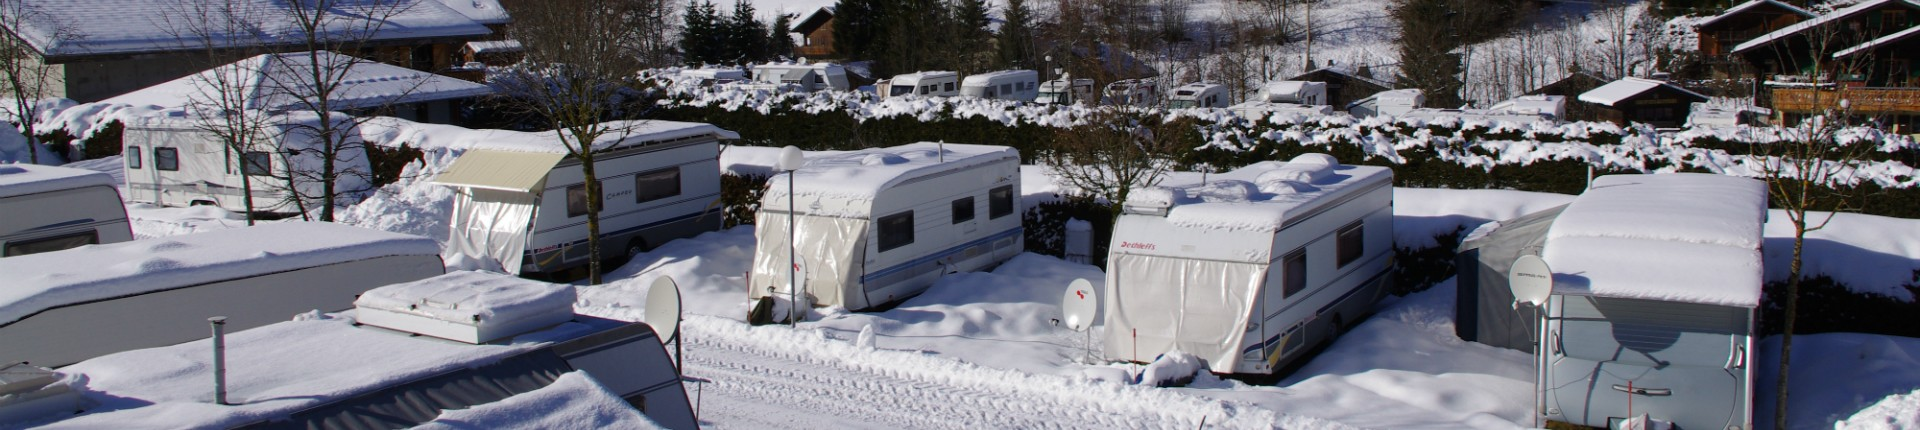 camping-l-oustalet-chatel-hiver-2-137